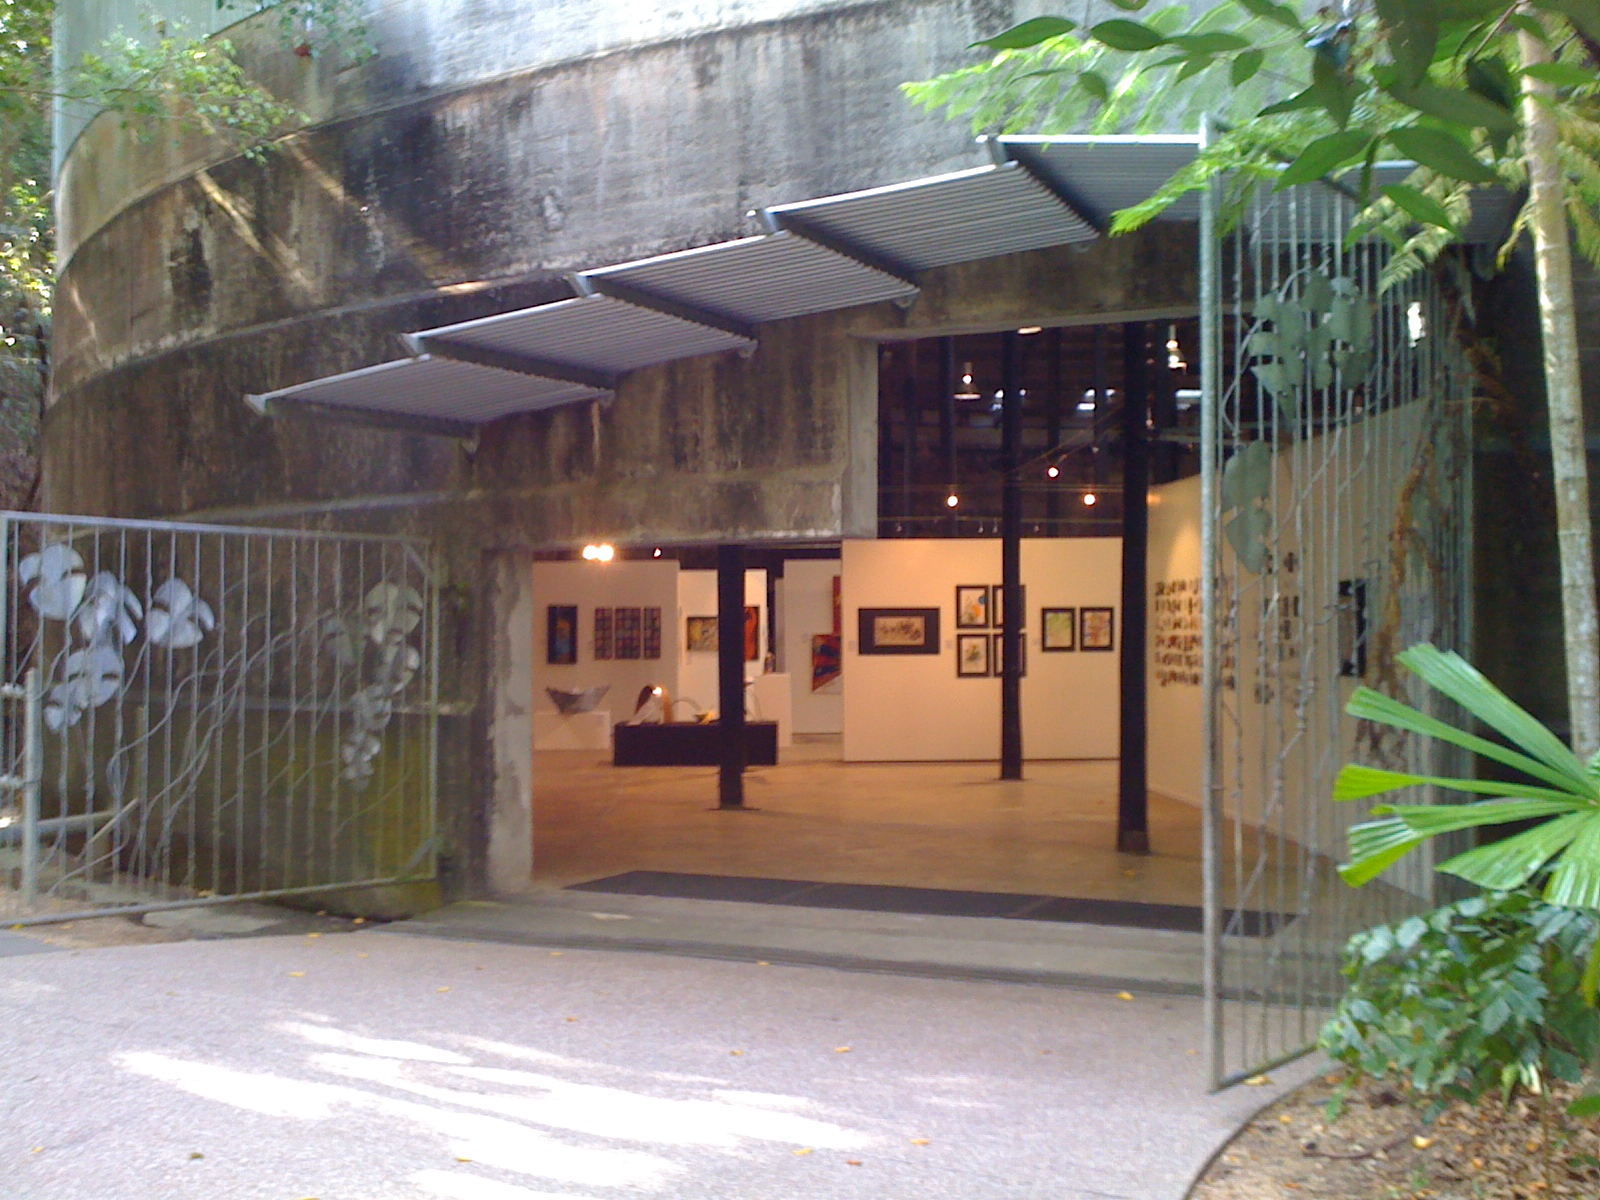 Steel gates lead into the Tanks Art Gallery, near the Botannical Garden, North Cairns.